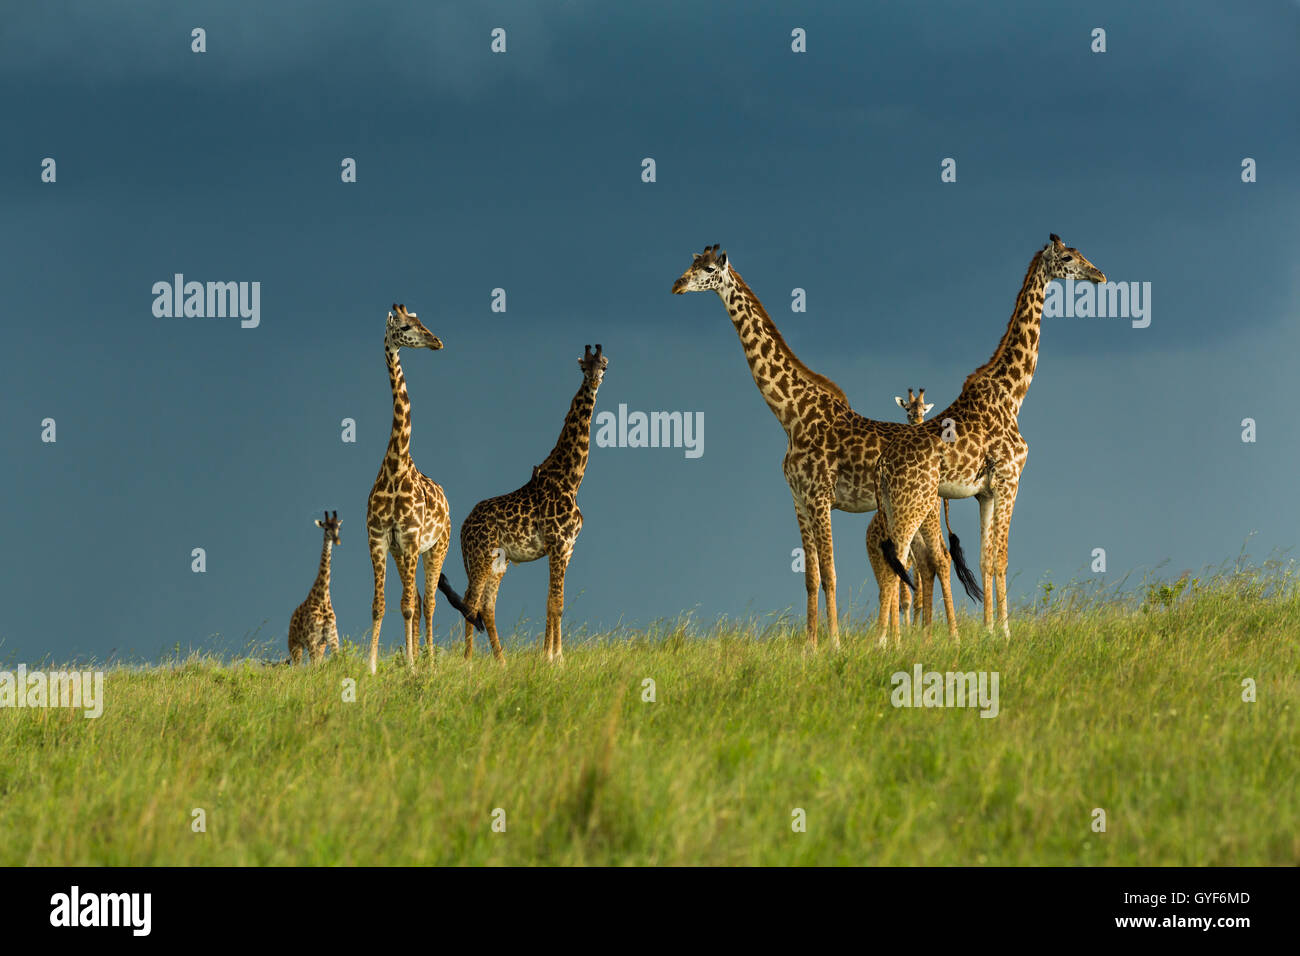 Masai Giraffe standing in the sun over storm clouds - Stock Image